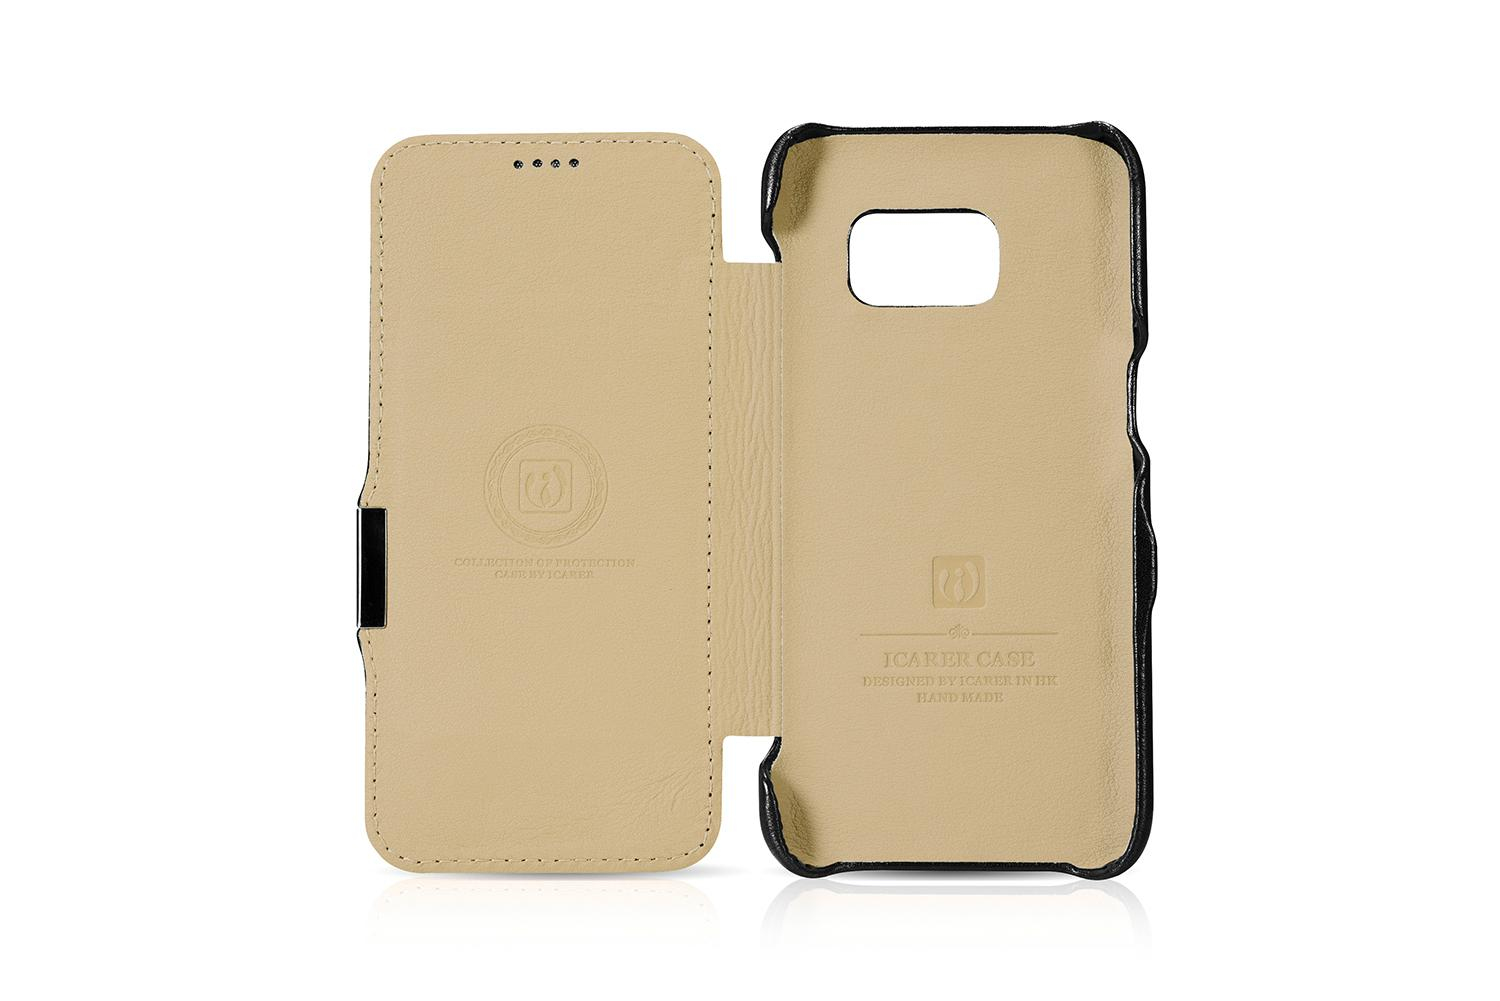 iCarer Samsung Galaxy S7 Luxury Series Side Open Genuine Leather Case 9